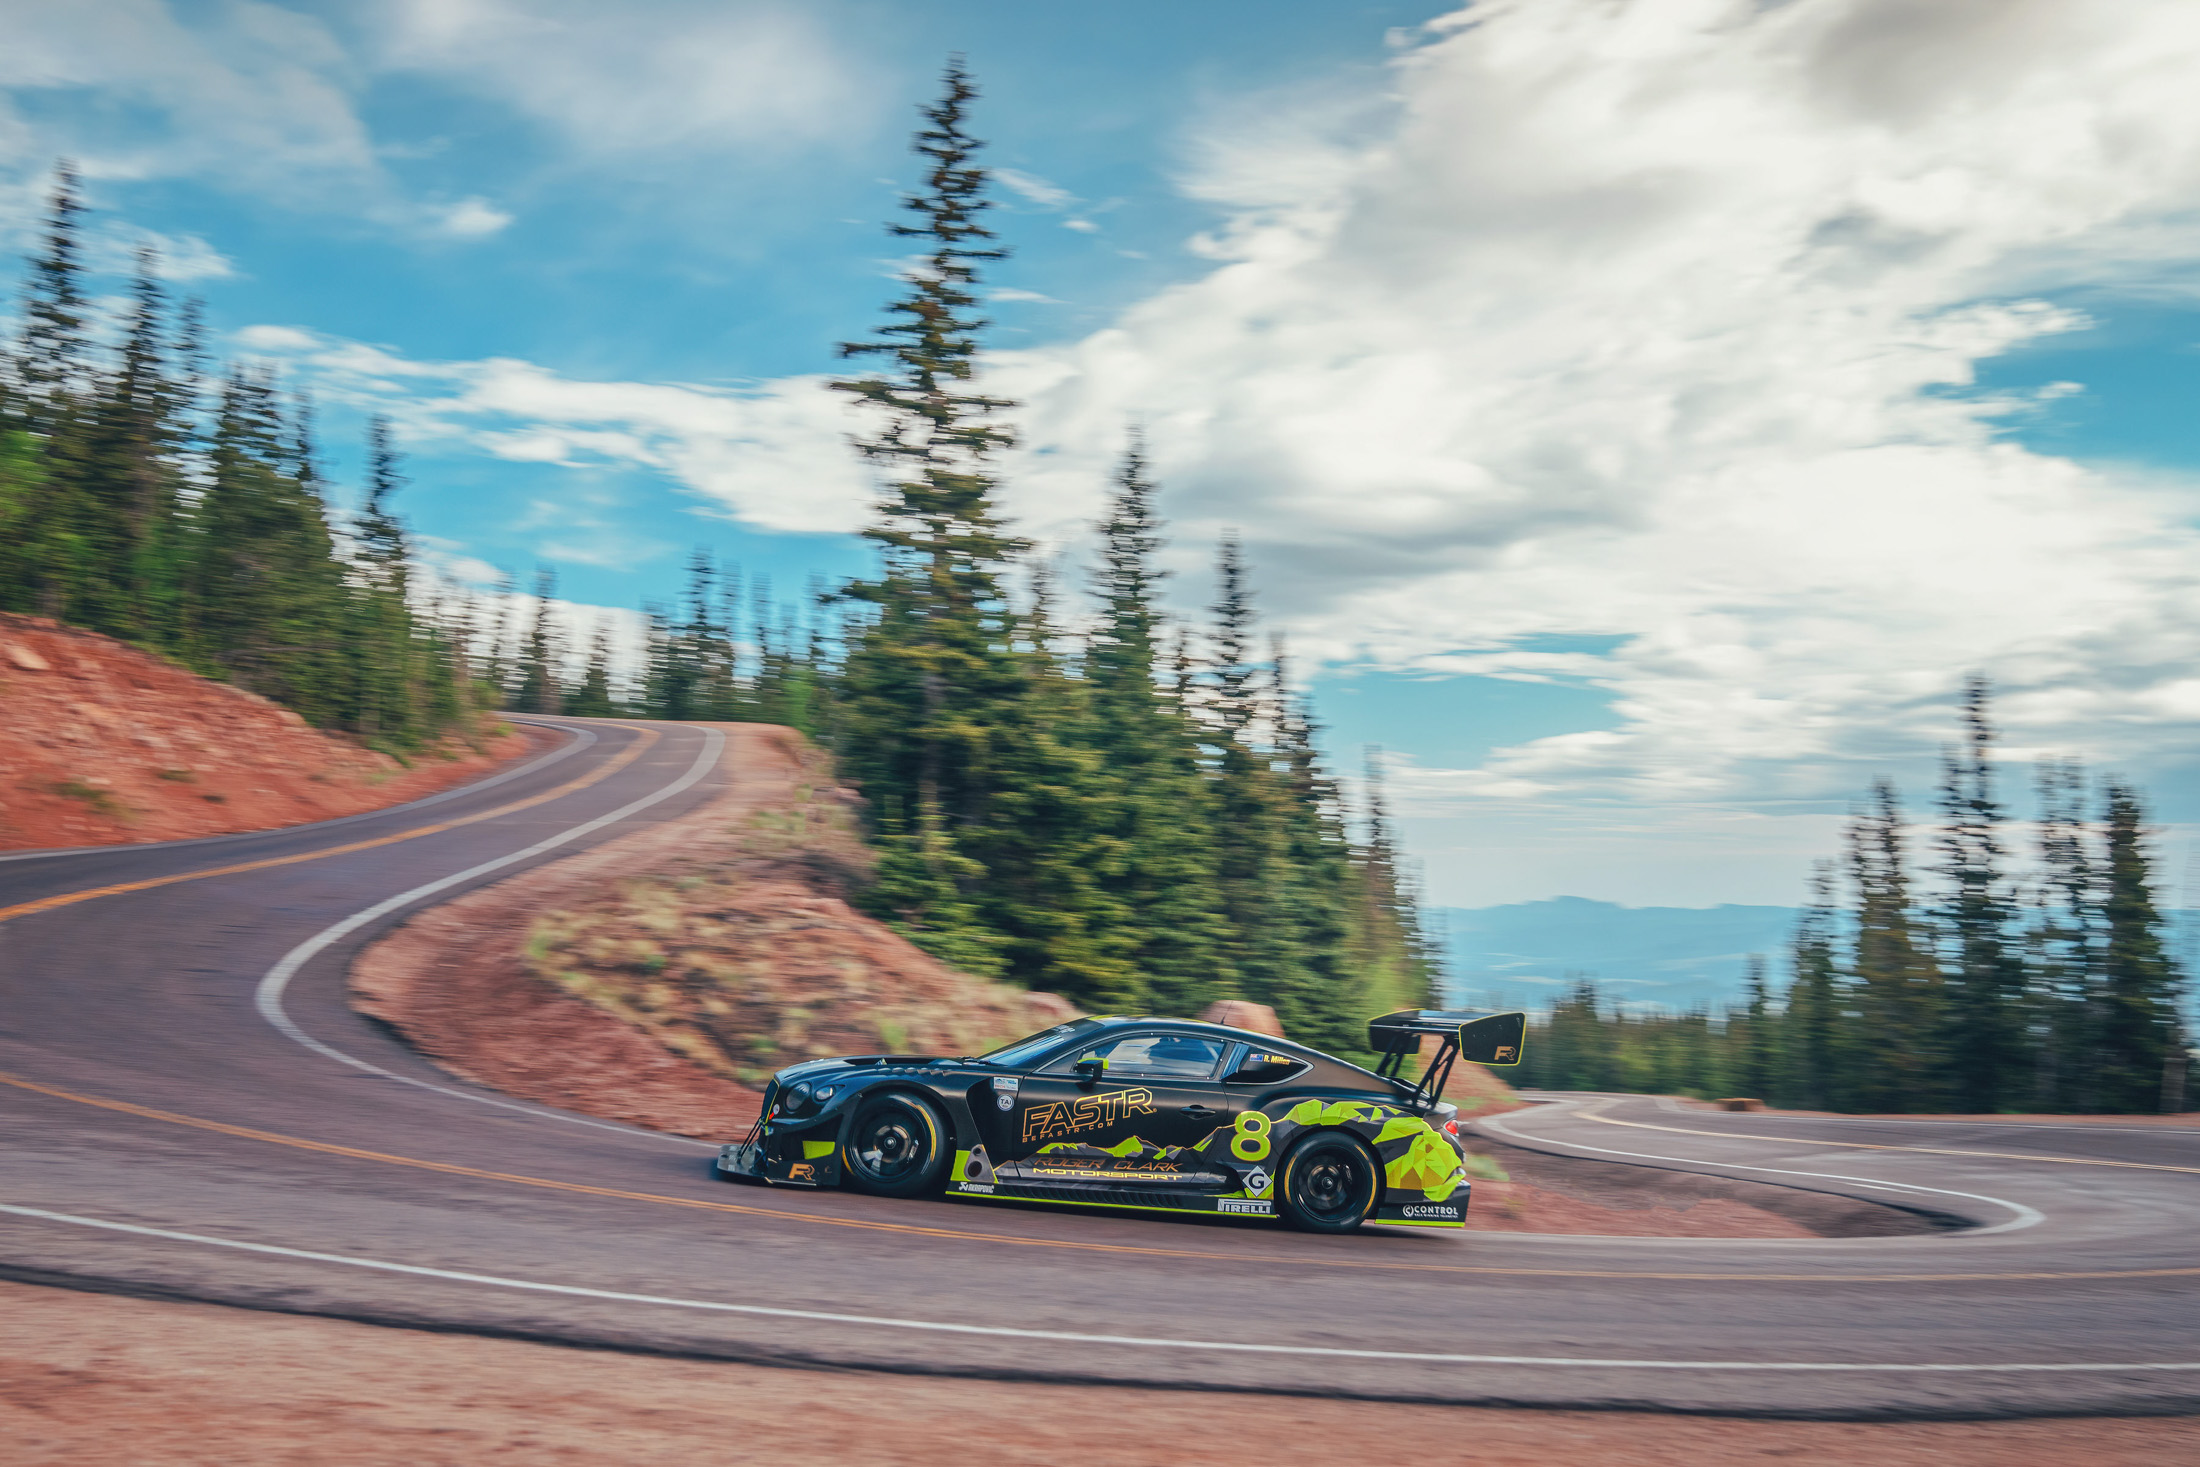 relates to Bentley Tests Its Futuristic Biofuel by Climbing Up Pike's Peak